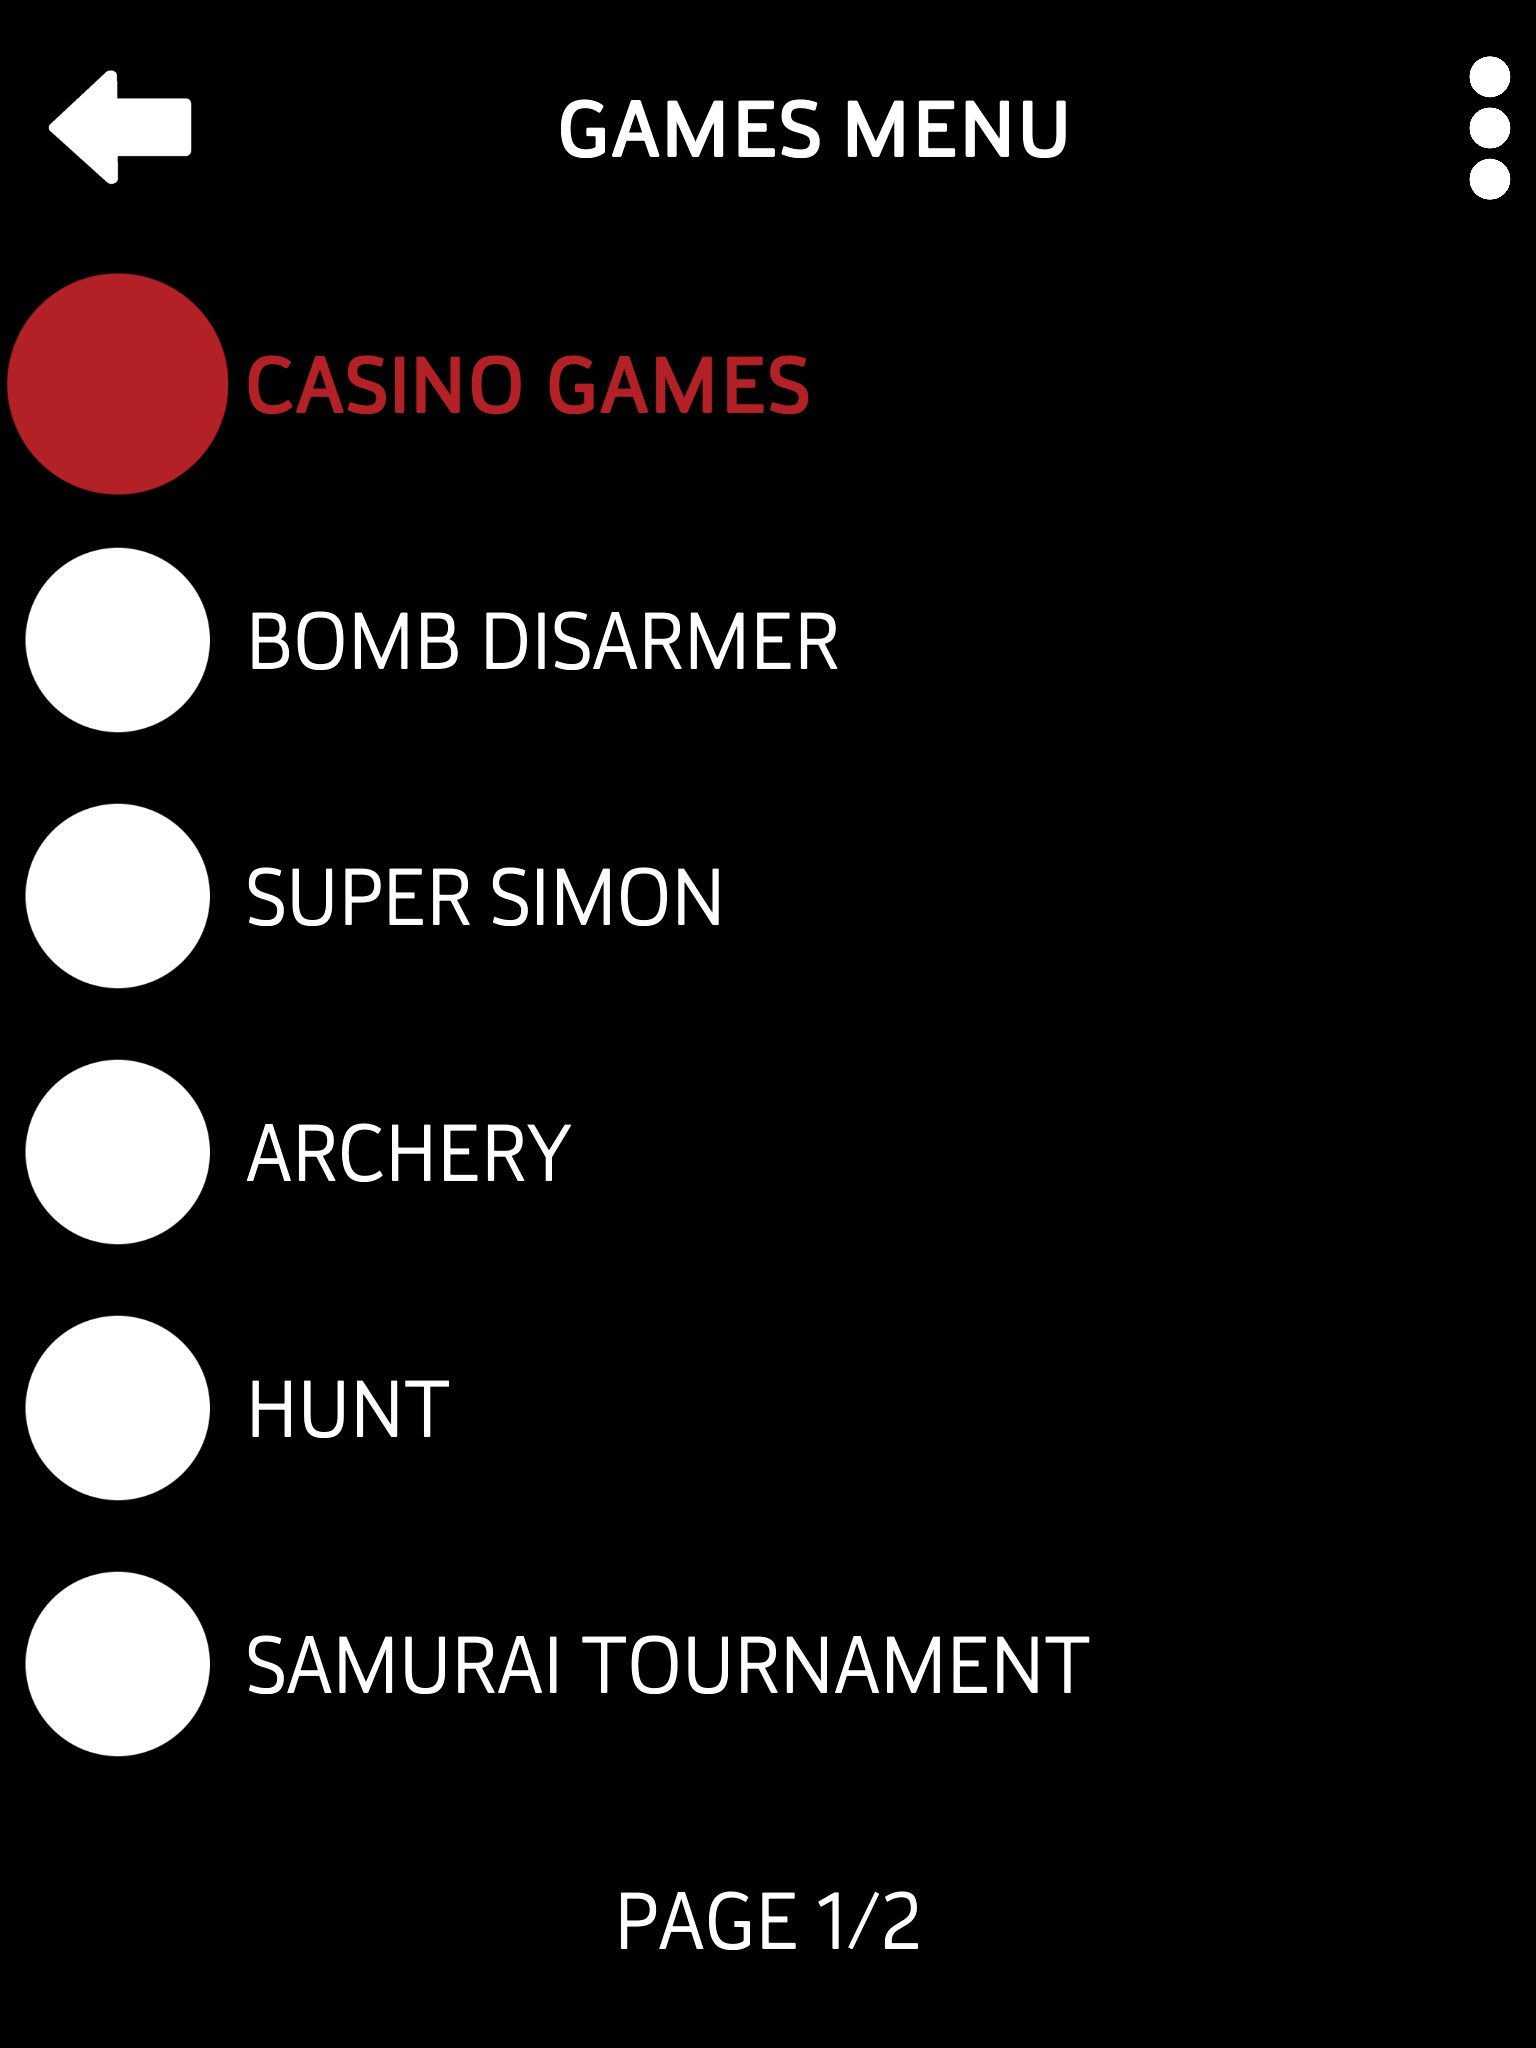 "Screenshot of Audio Game Hub displaying the Games Menu page 1 of 2. Background is black with large white text and buttons. ""Casino Games, Bomb Disarmer, Super Simon, Archery, Hunt, Samarai Tournament."